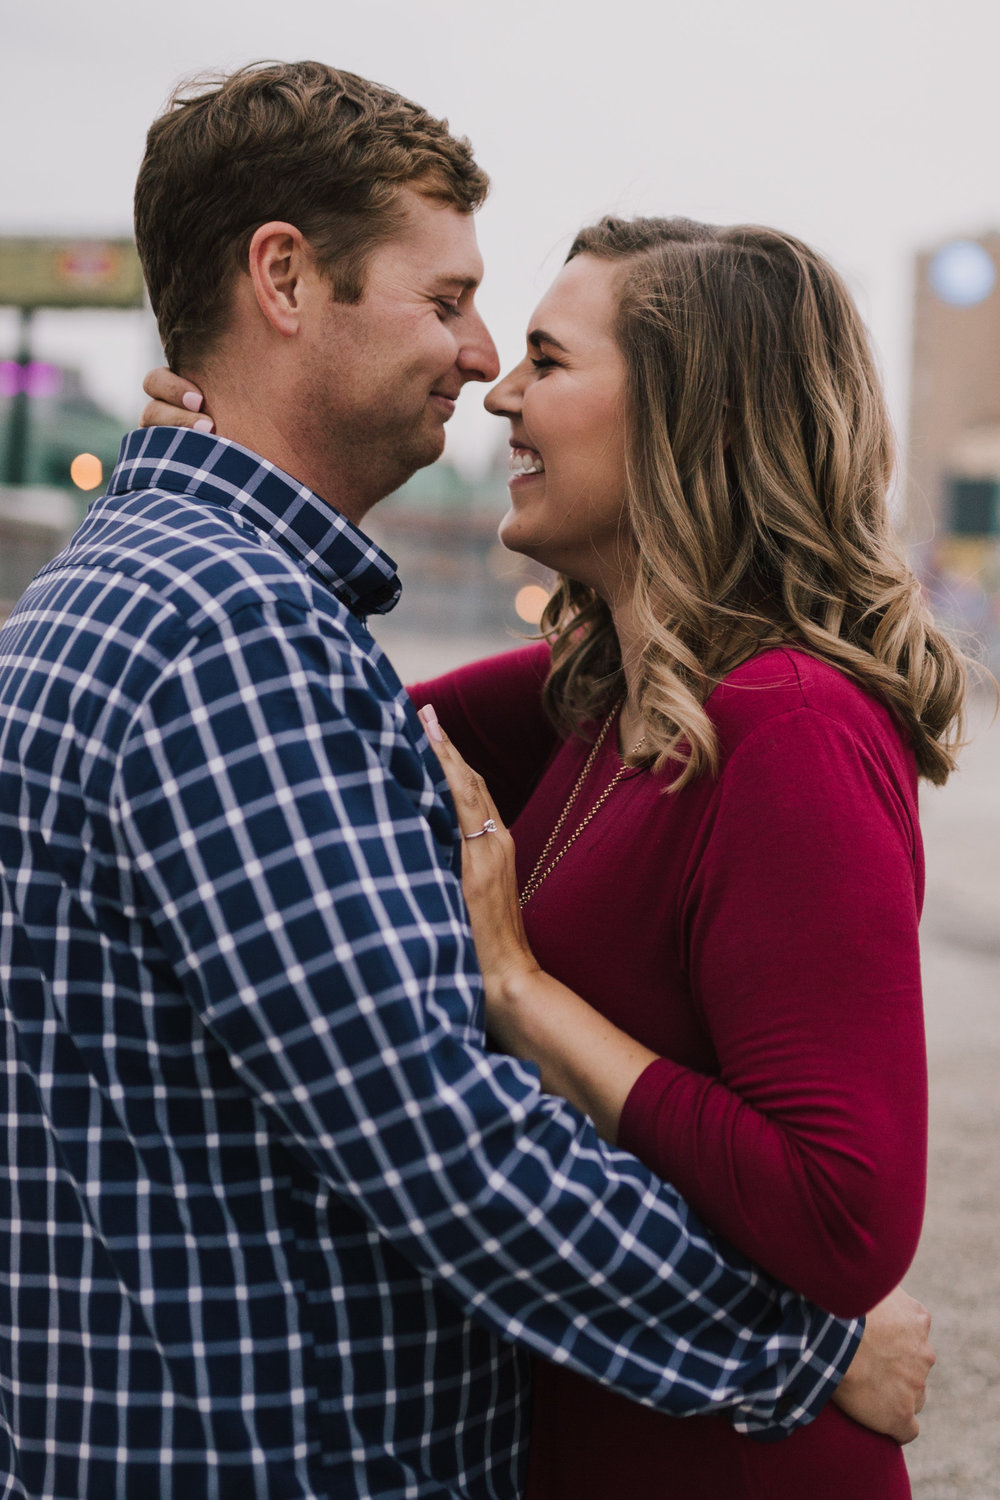 alyssa barletter photography downtown kansas city engagement photos rosedale arch wedding photographer-16.jpg